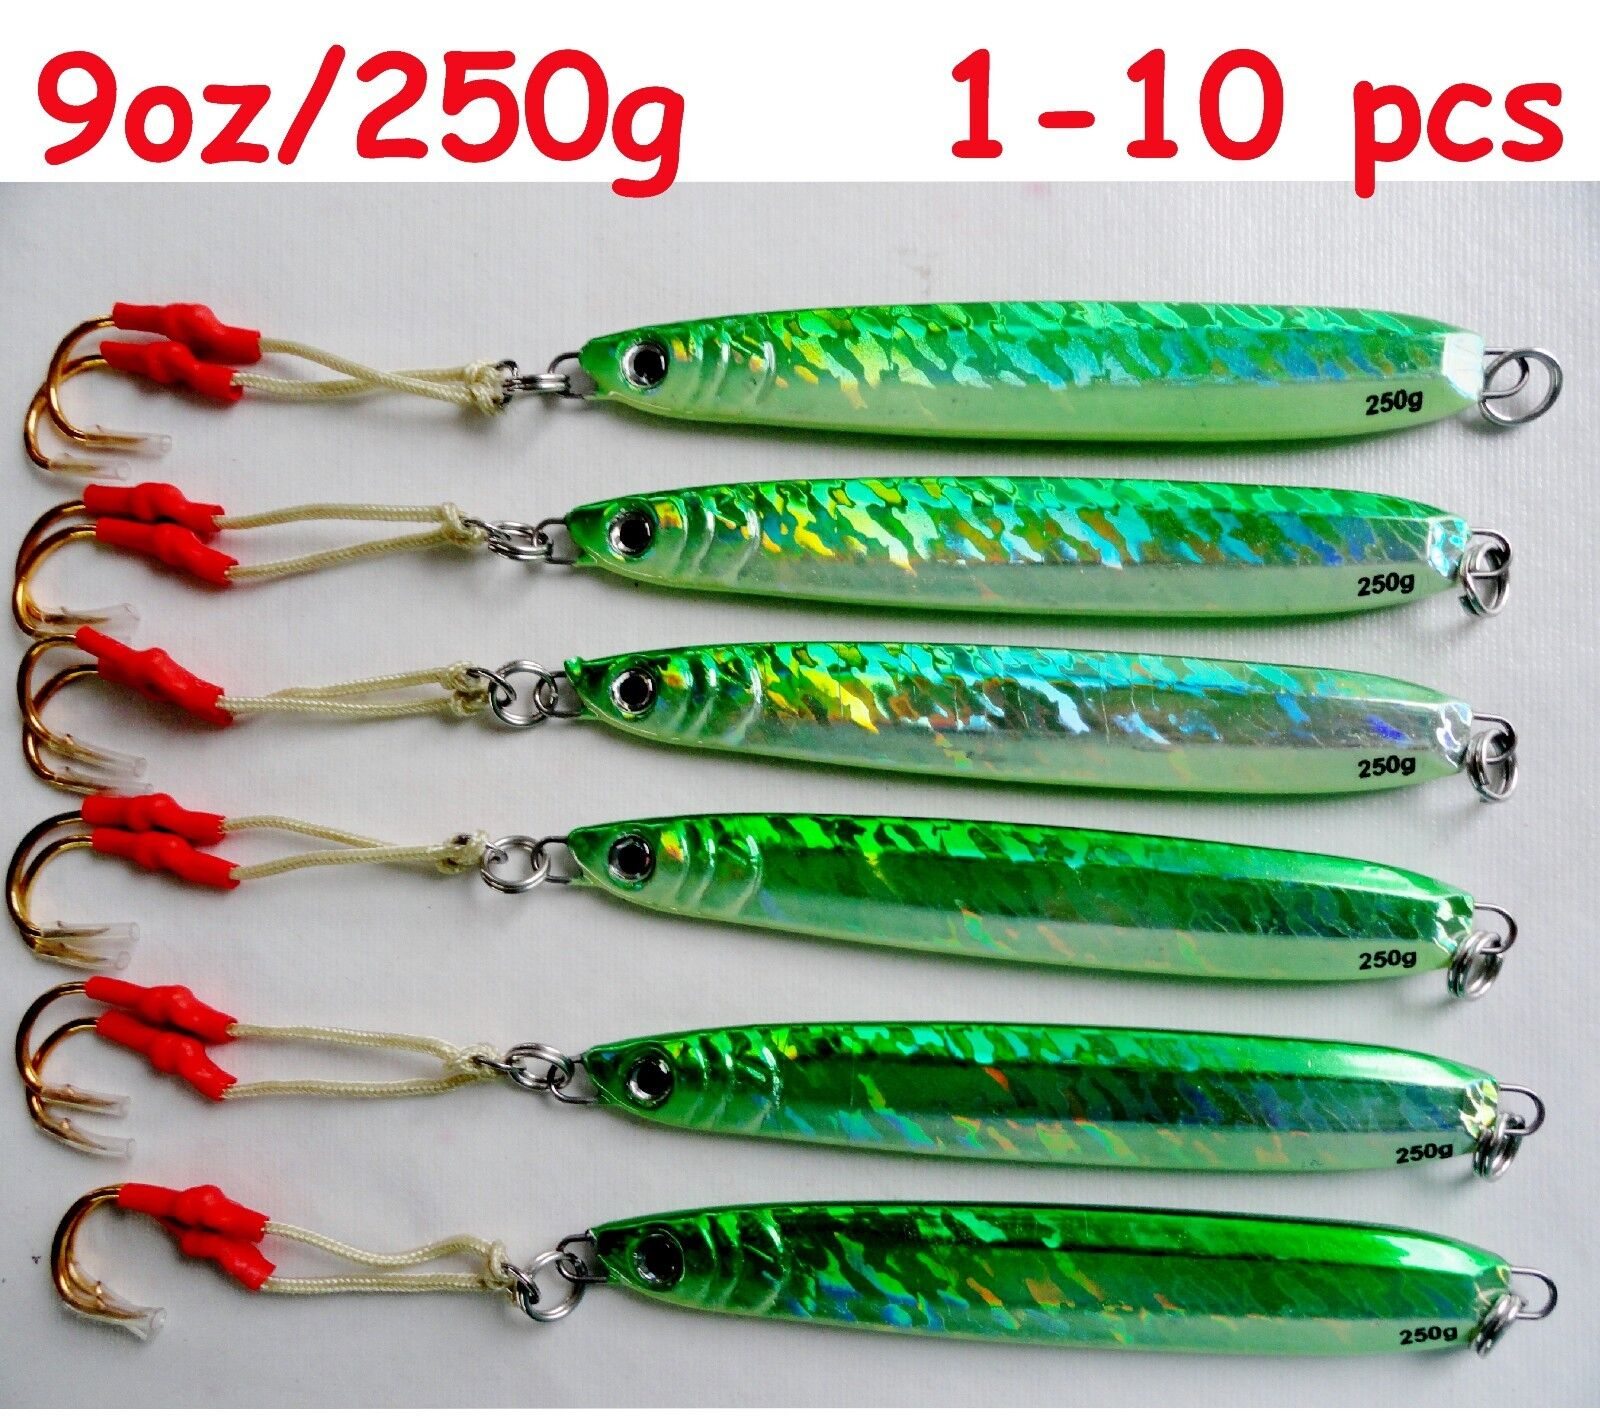 1-10 pcs Knife Jigs  9oz  250g Green greenical Butterfly Saltwater Lures  take up to 70% off